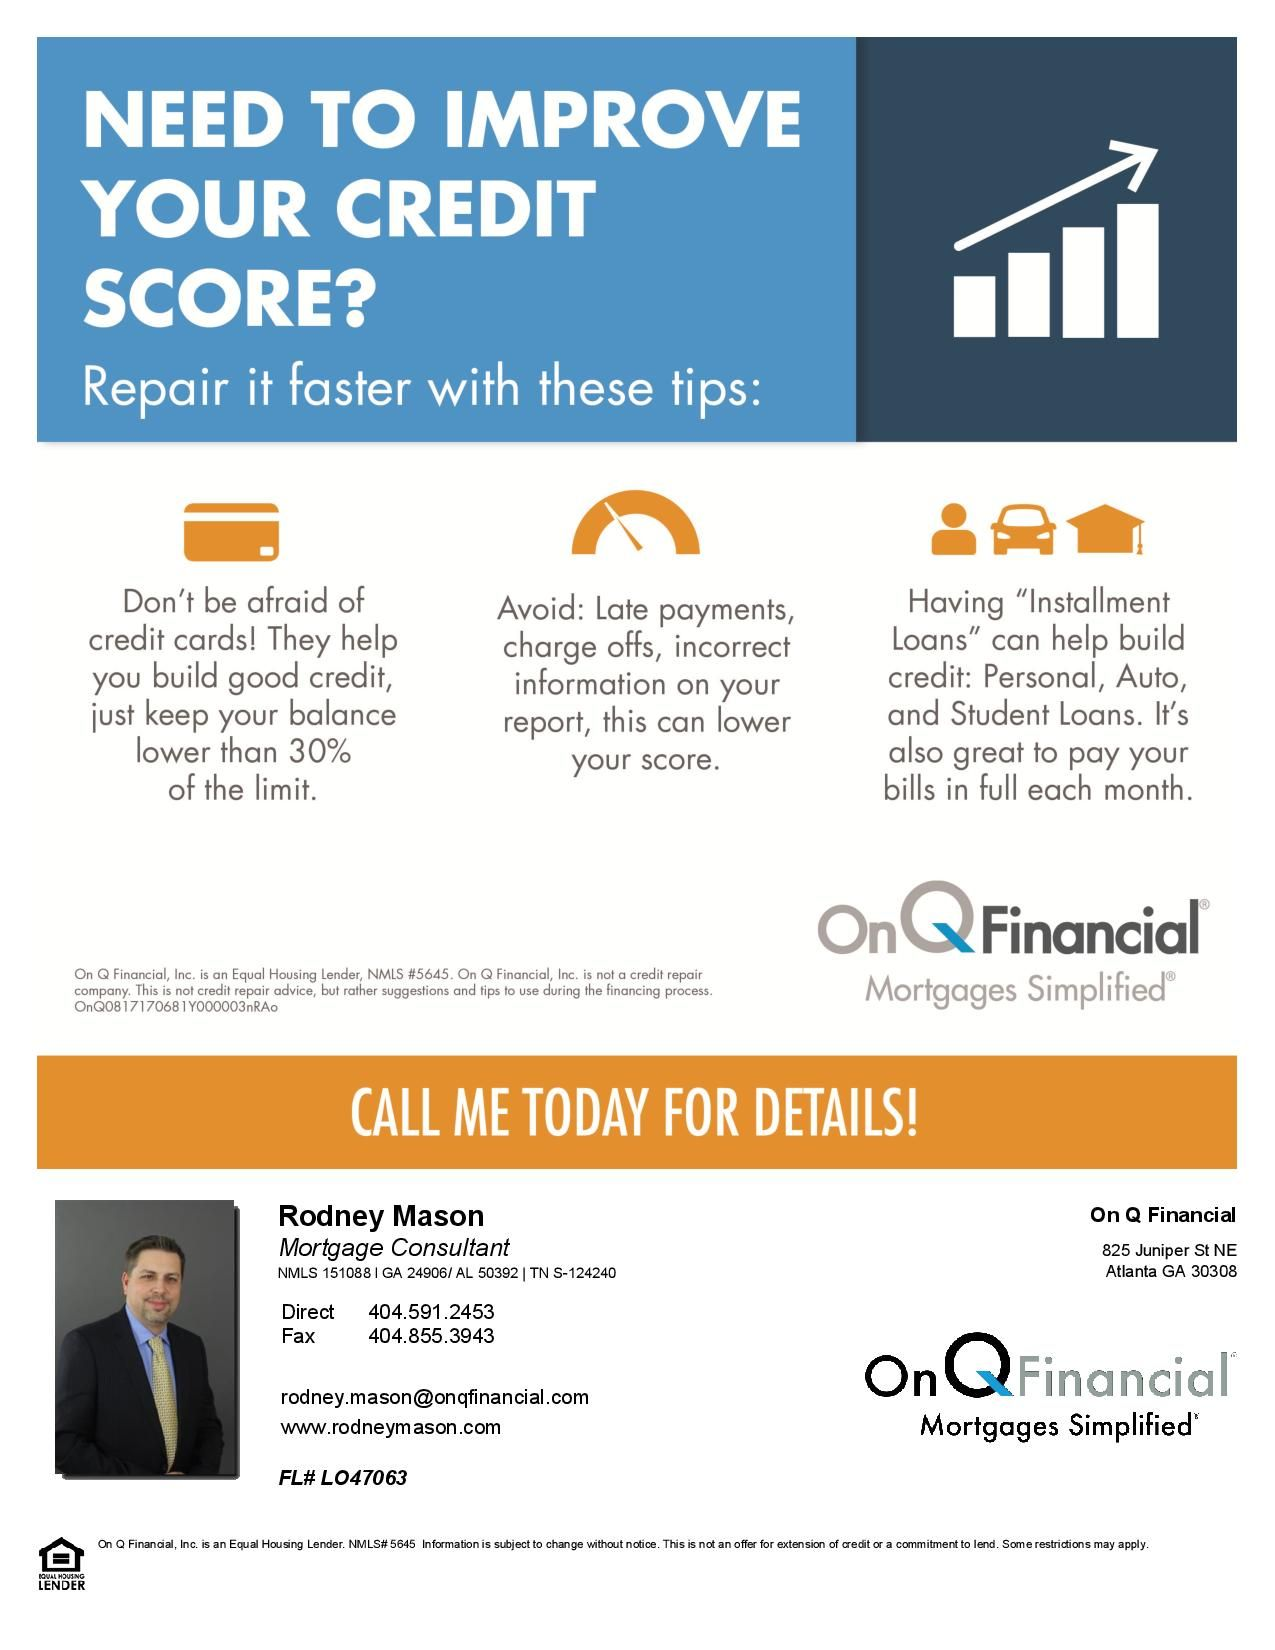 We All Know That Good Credit Is Essential To Purchasing A Home Here Are Some Tips To Build And Maintain Gr Good Credit Improve Your Credit Score Mortgage Tips